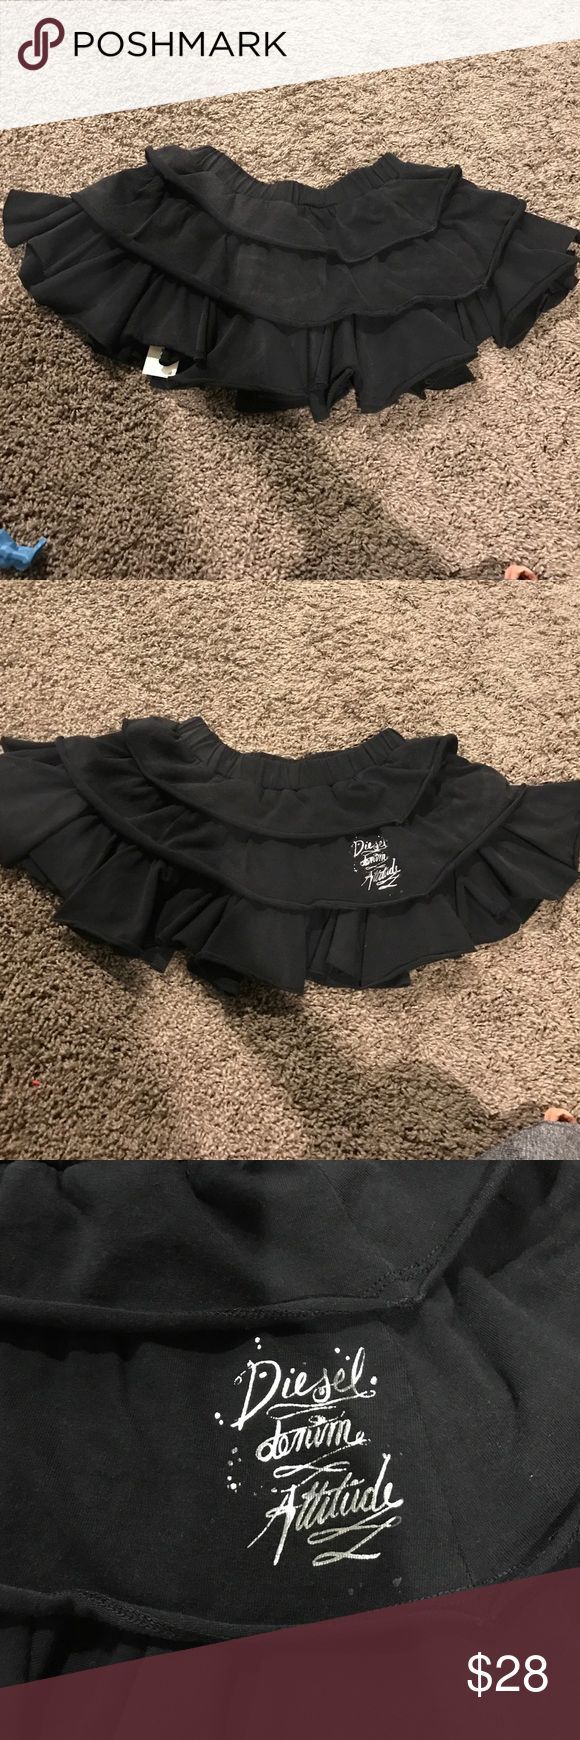 Girls diesel skirt Cute black ruffle Diesel skirt . Size xxs... would fit a 4-7 year old girl. Super stretchy. Diesel Bottoms Skirts